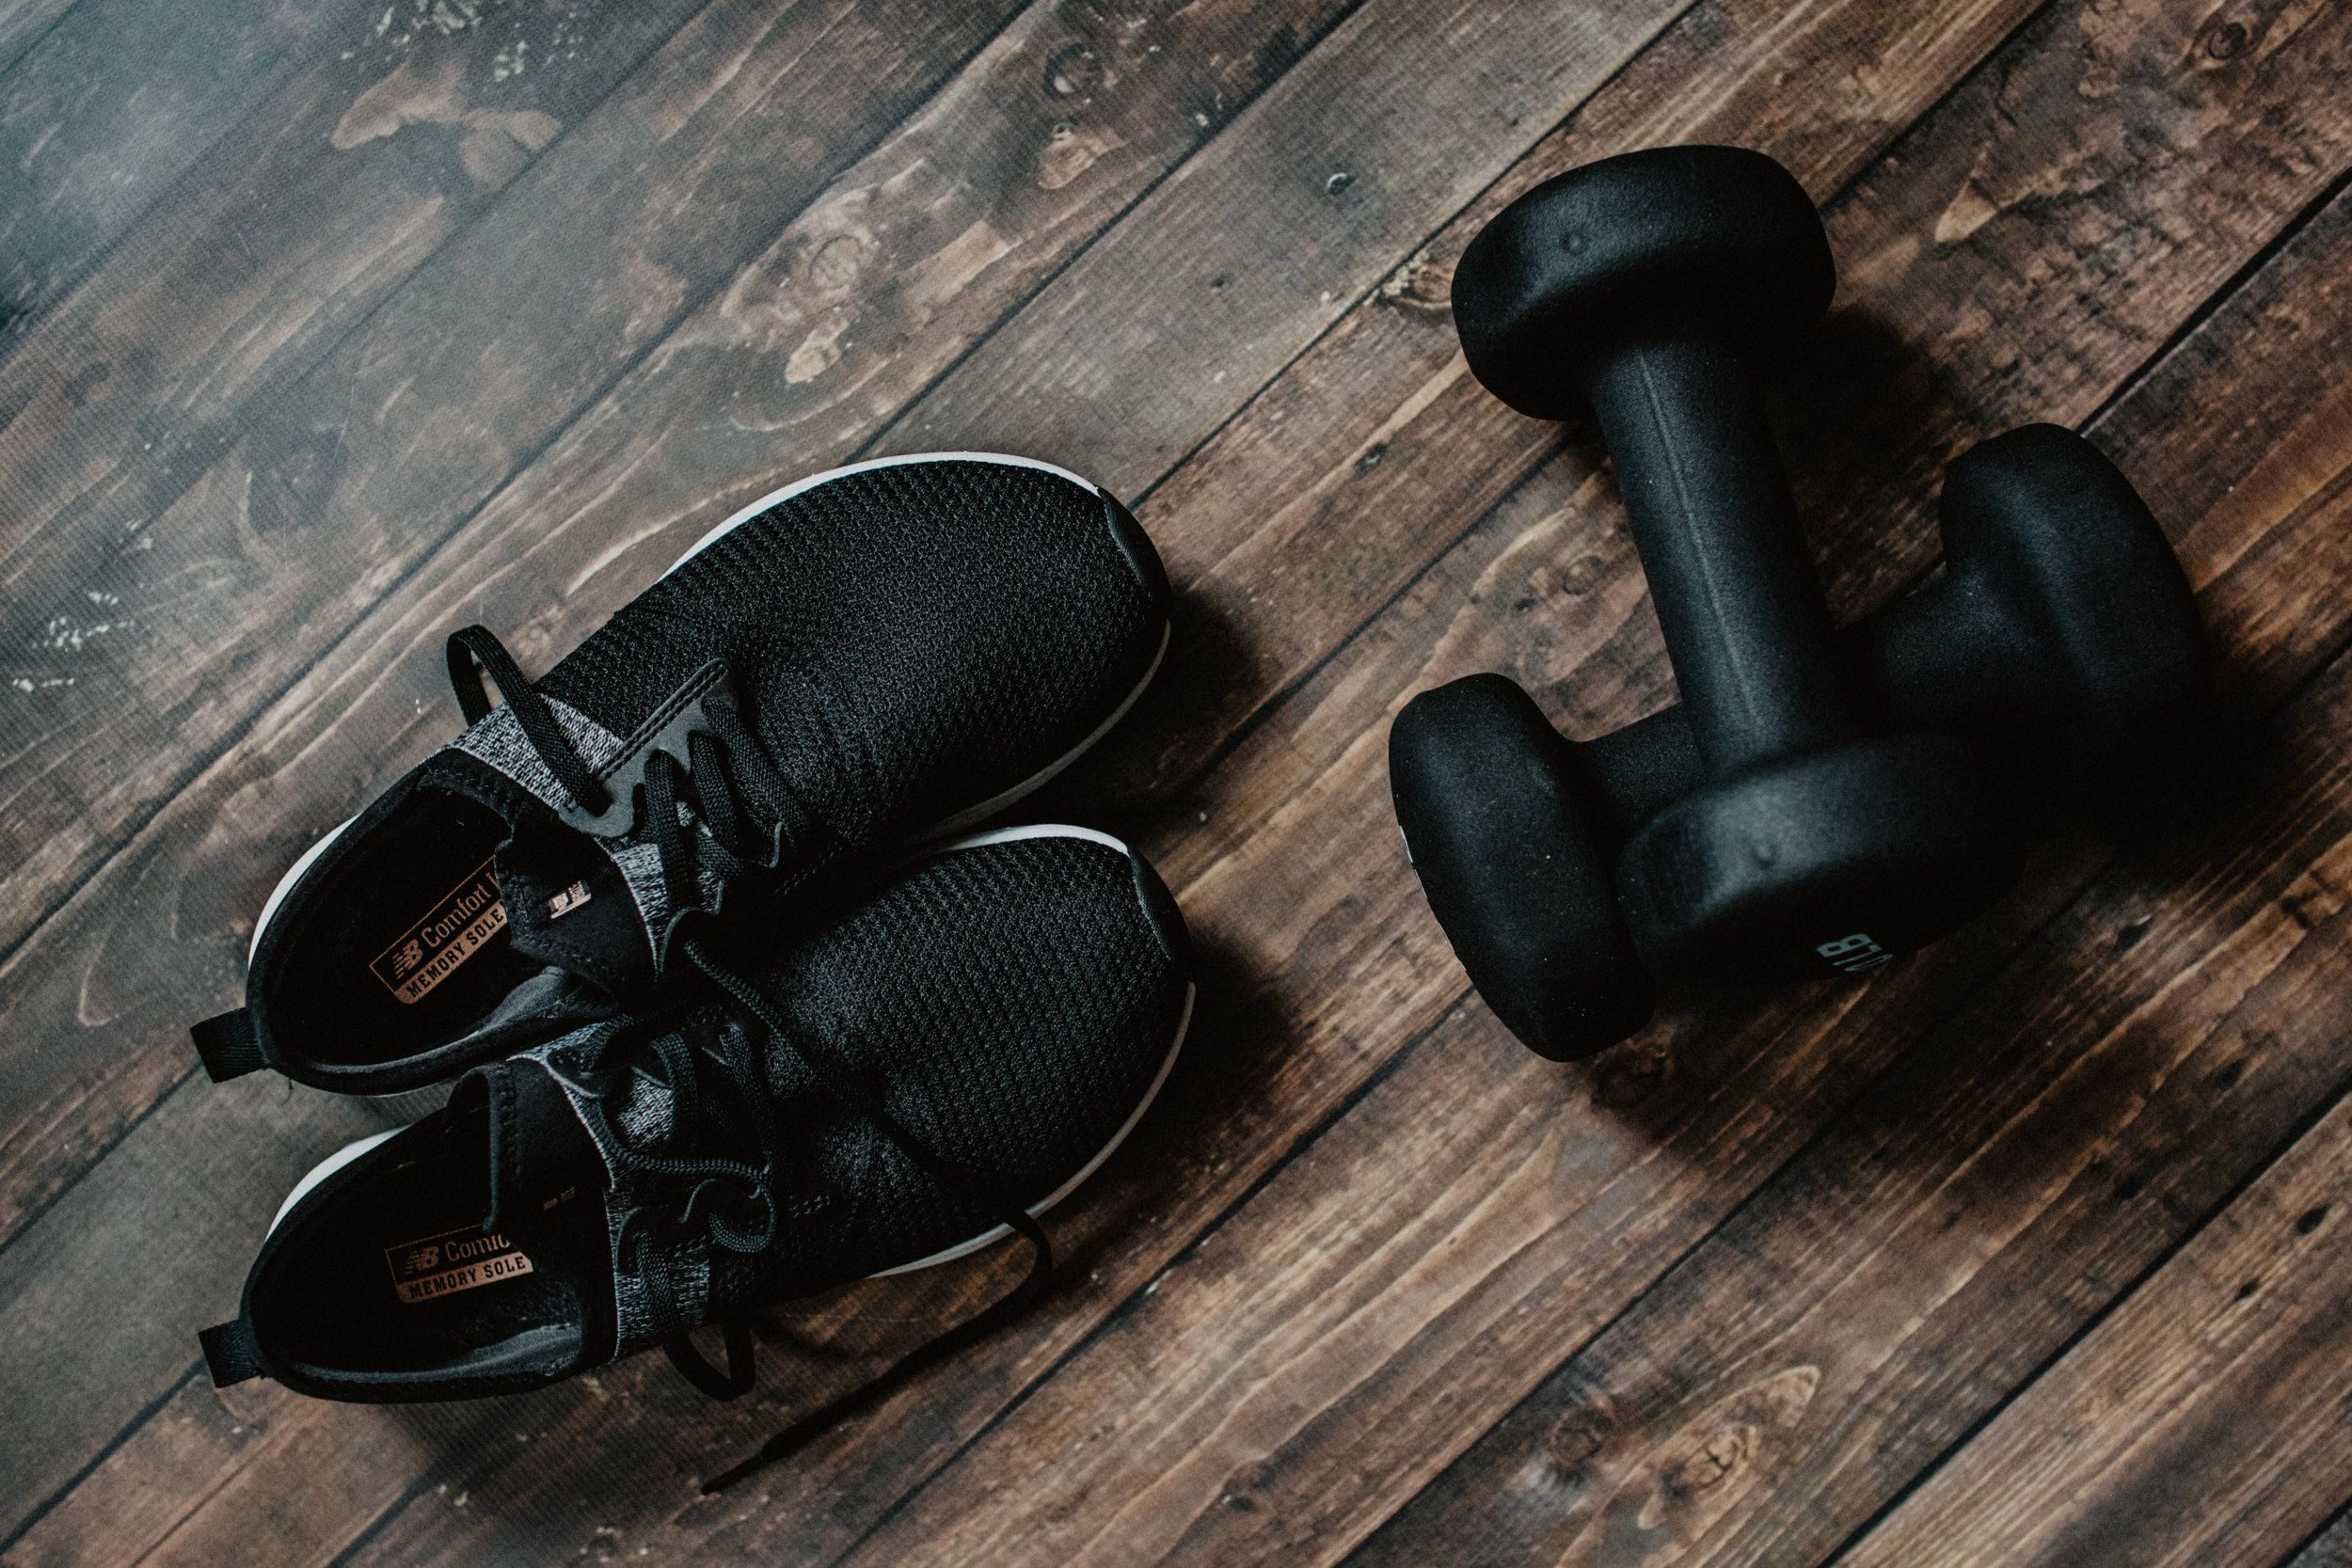 Here's some equipment to get you started. - No pain. No gain.